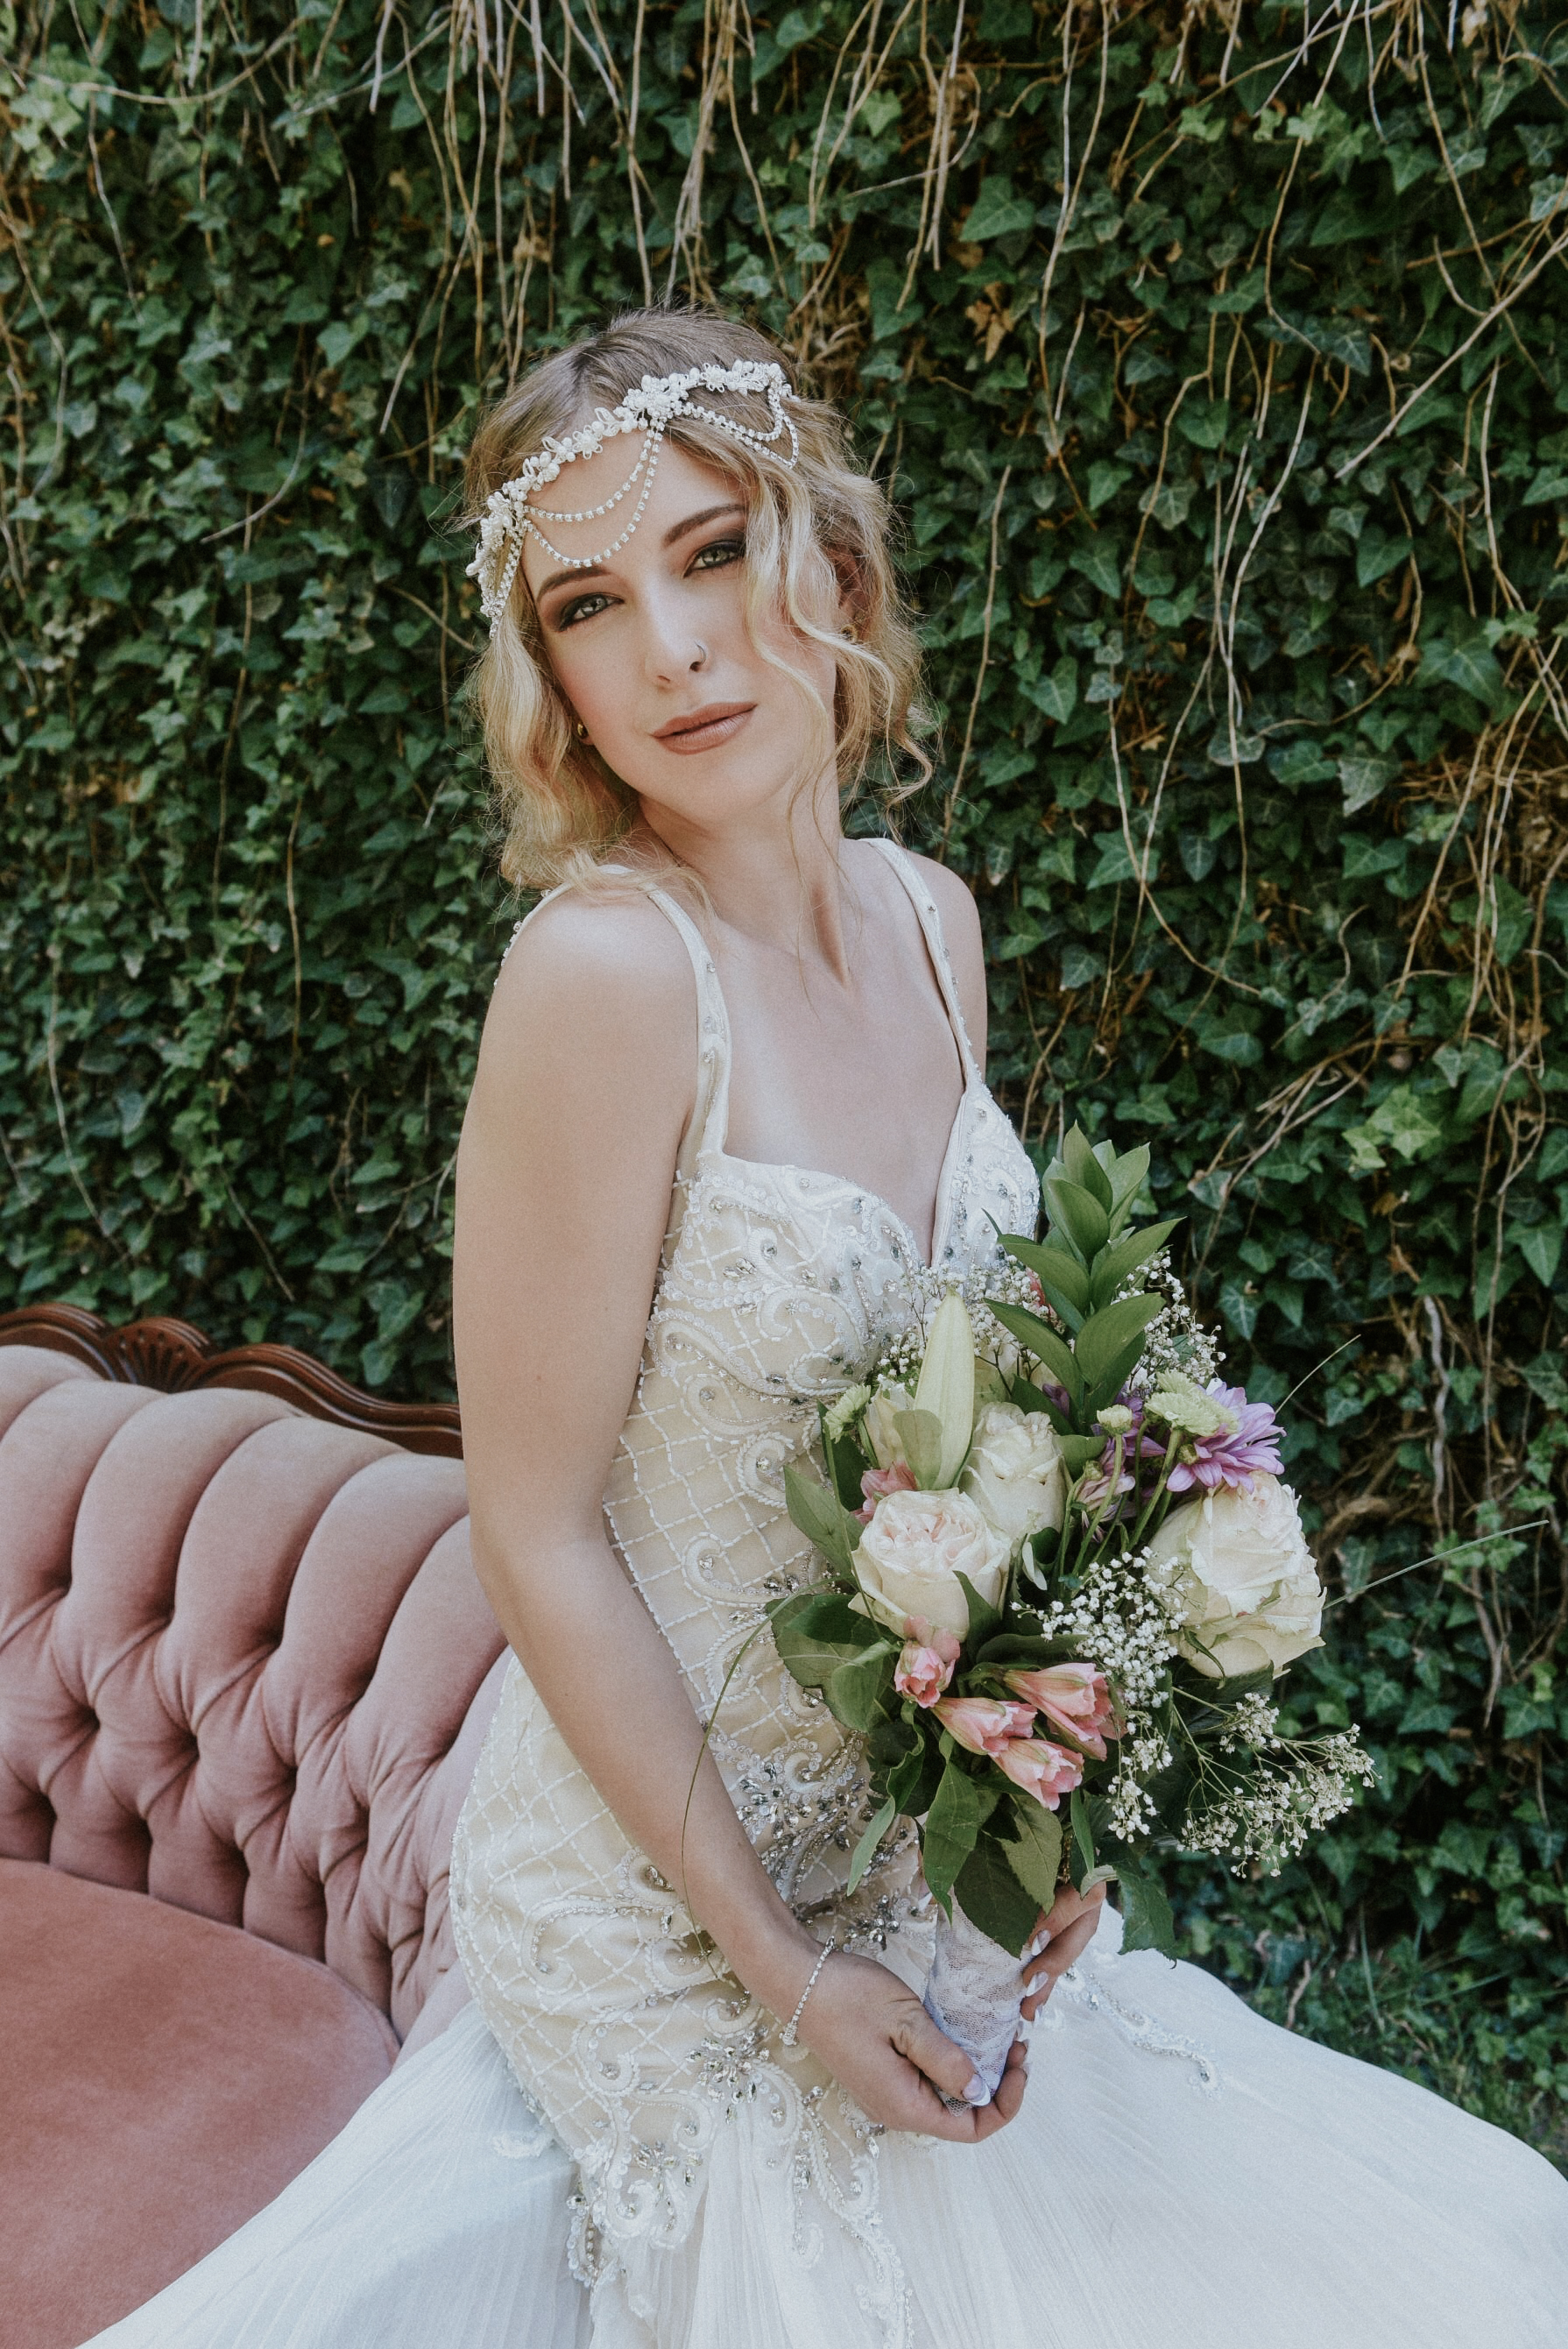 Pearl and stone beaded bridal dress siren shape with train, and headpiece by La Creme St. Jacobs. Relaxed boho bridal braid by Rachel Jones BPretty Make-up & Hair Stylist. Wedding photographer Julie Sawatzky Julie Nicole Photography Ontario Canada